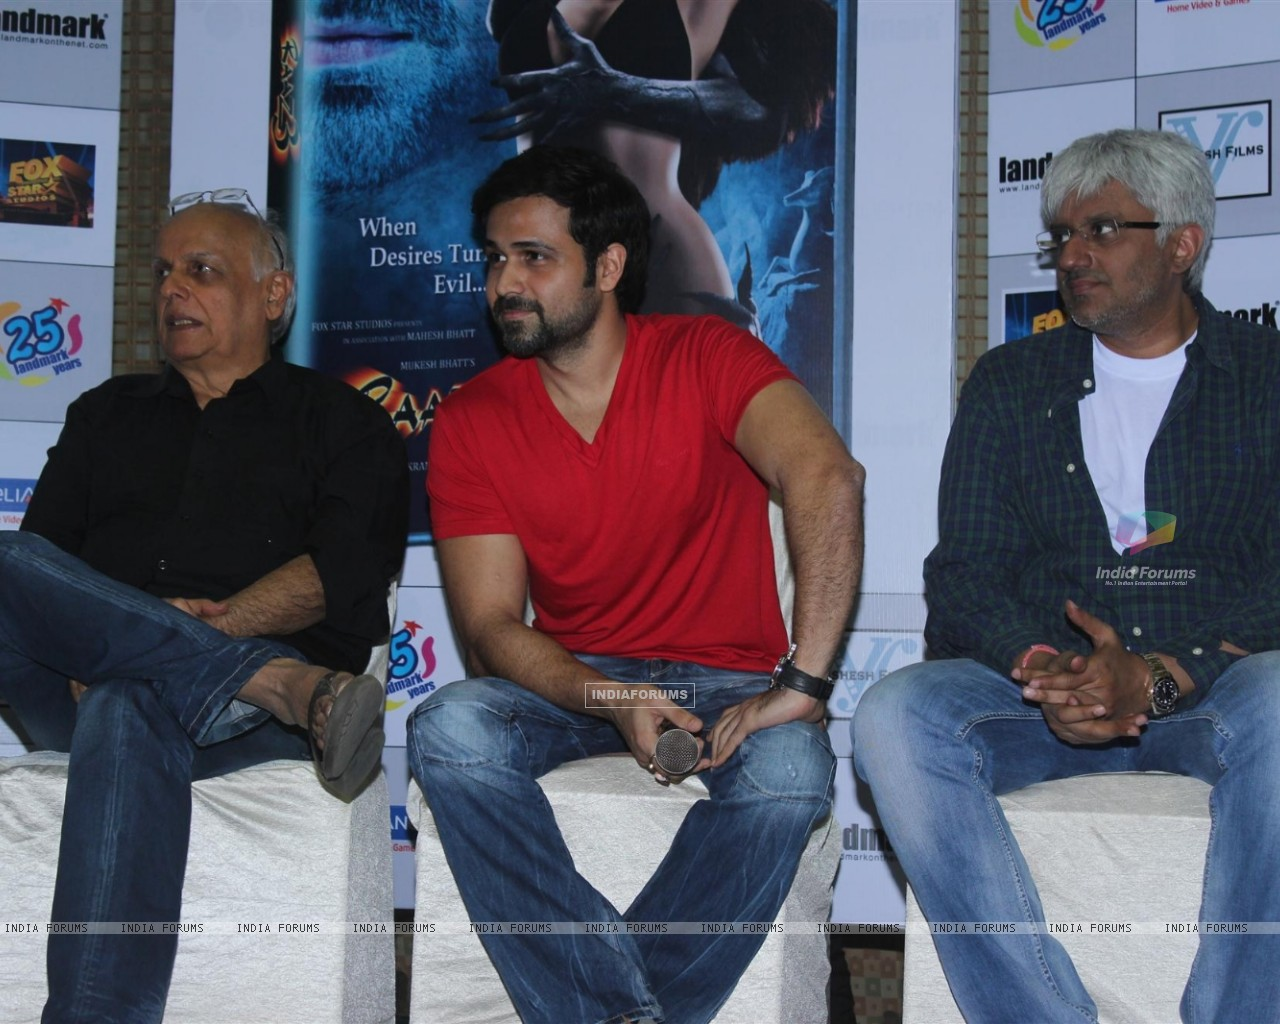 Mahesh Bhatt, Emraan Hashmi and Vikram Bhatt at Film Raaz 3 DVD Launch (237831) size:1280x1024